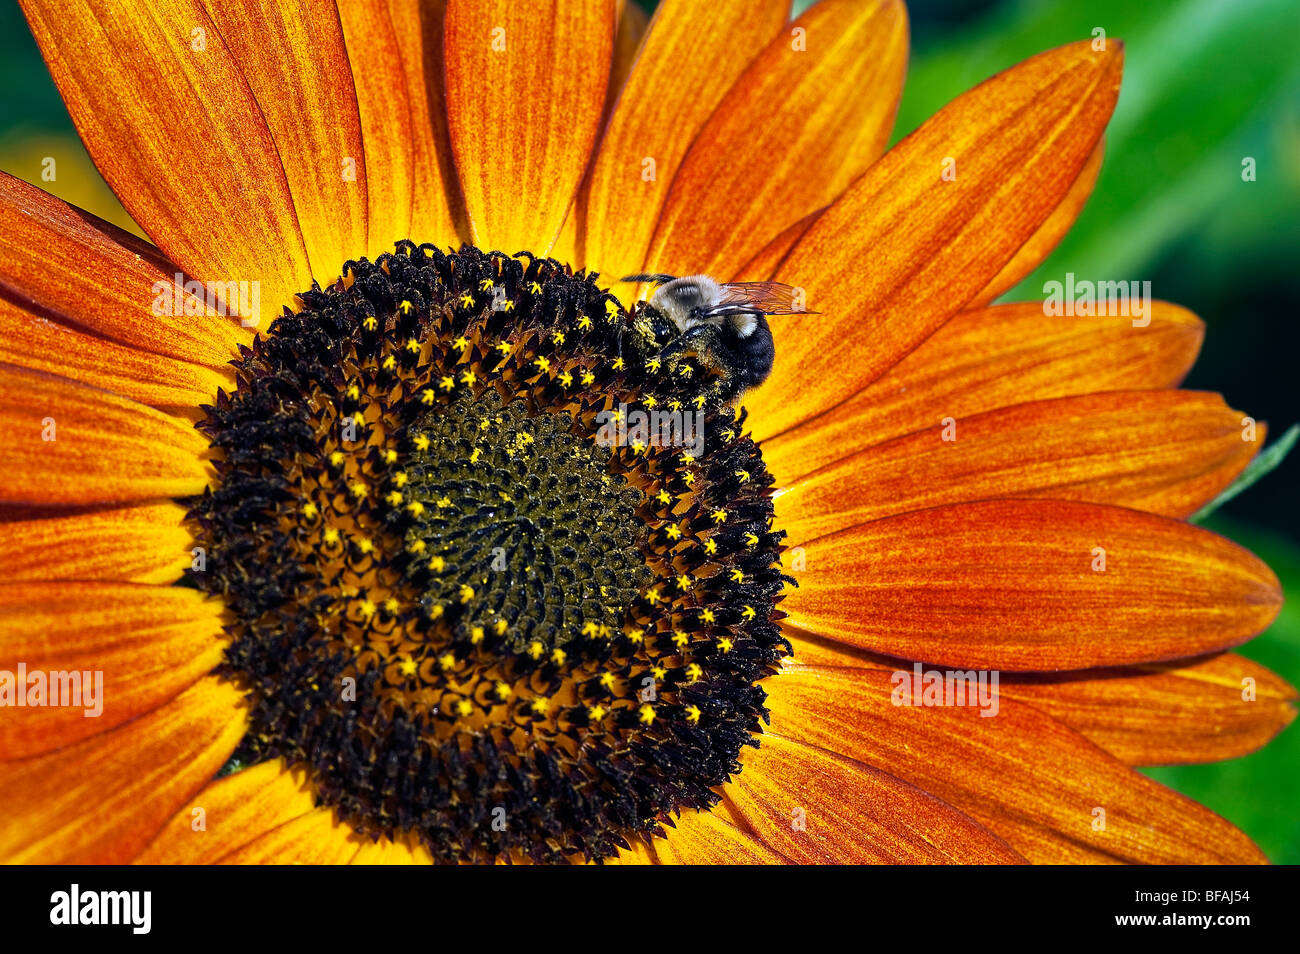 Bee and sunflower. - Stock Image